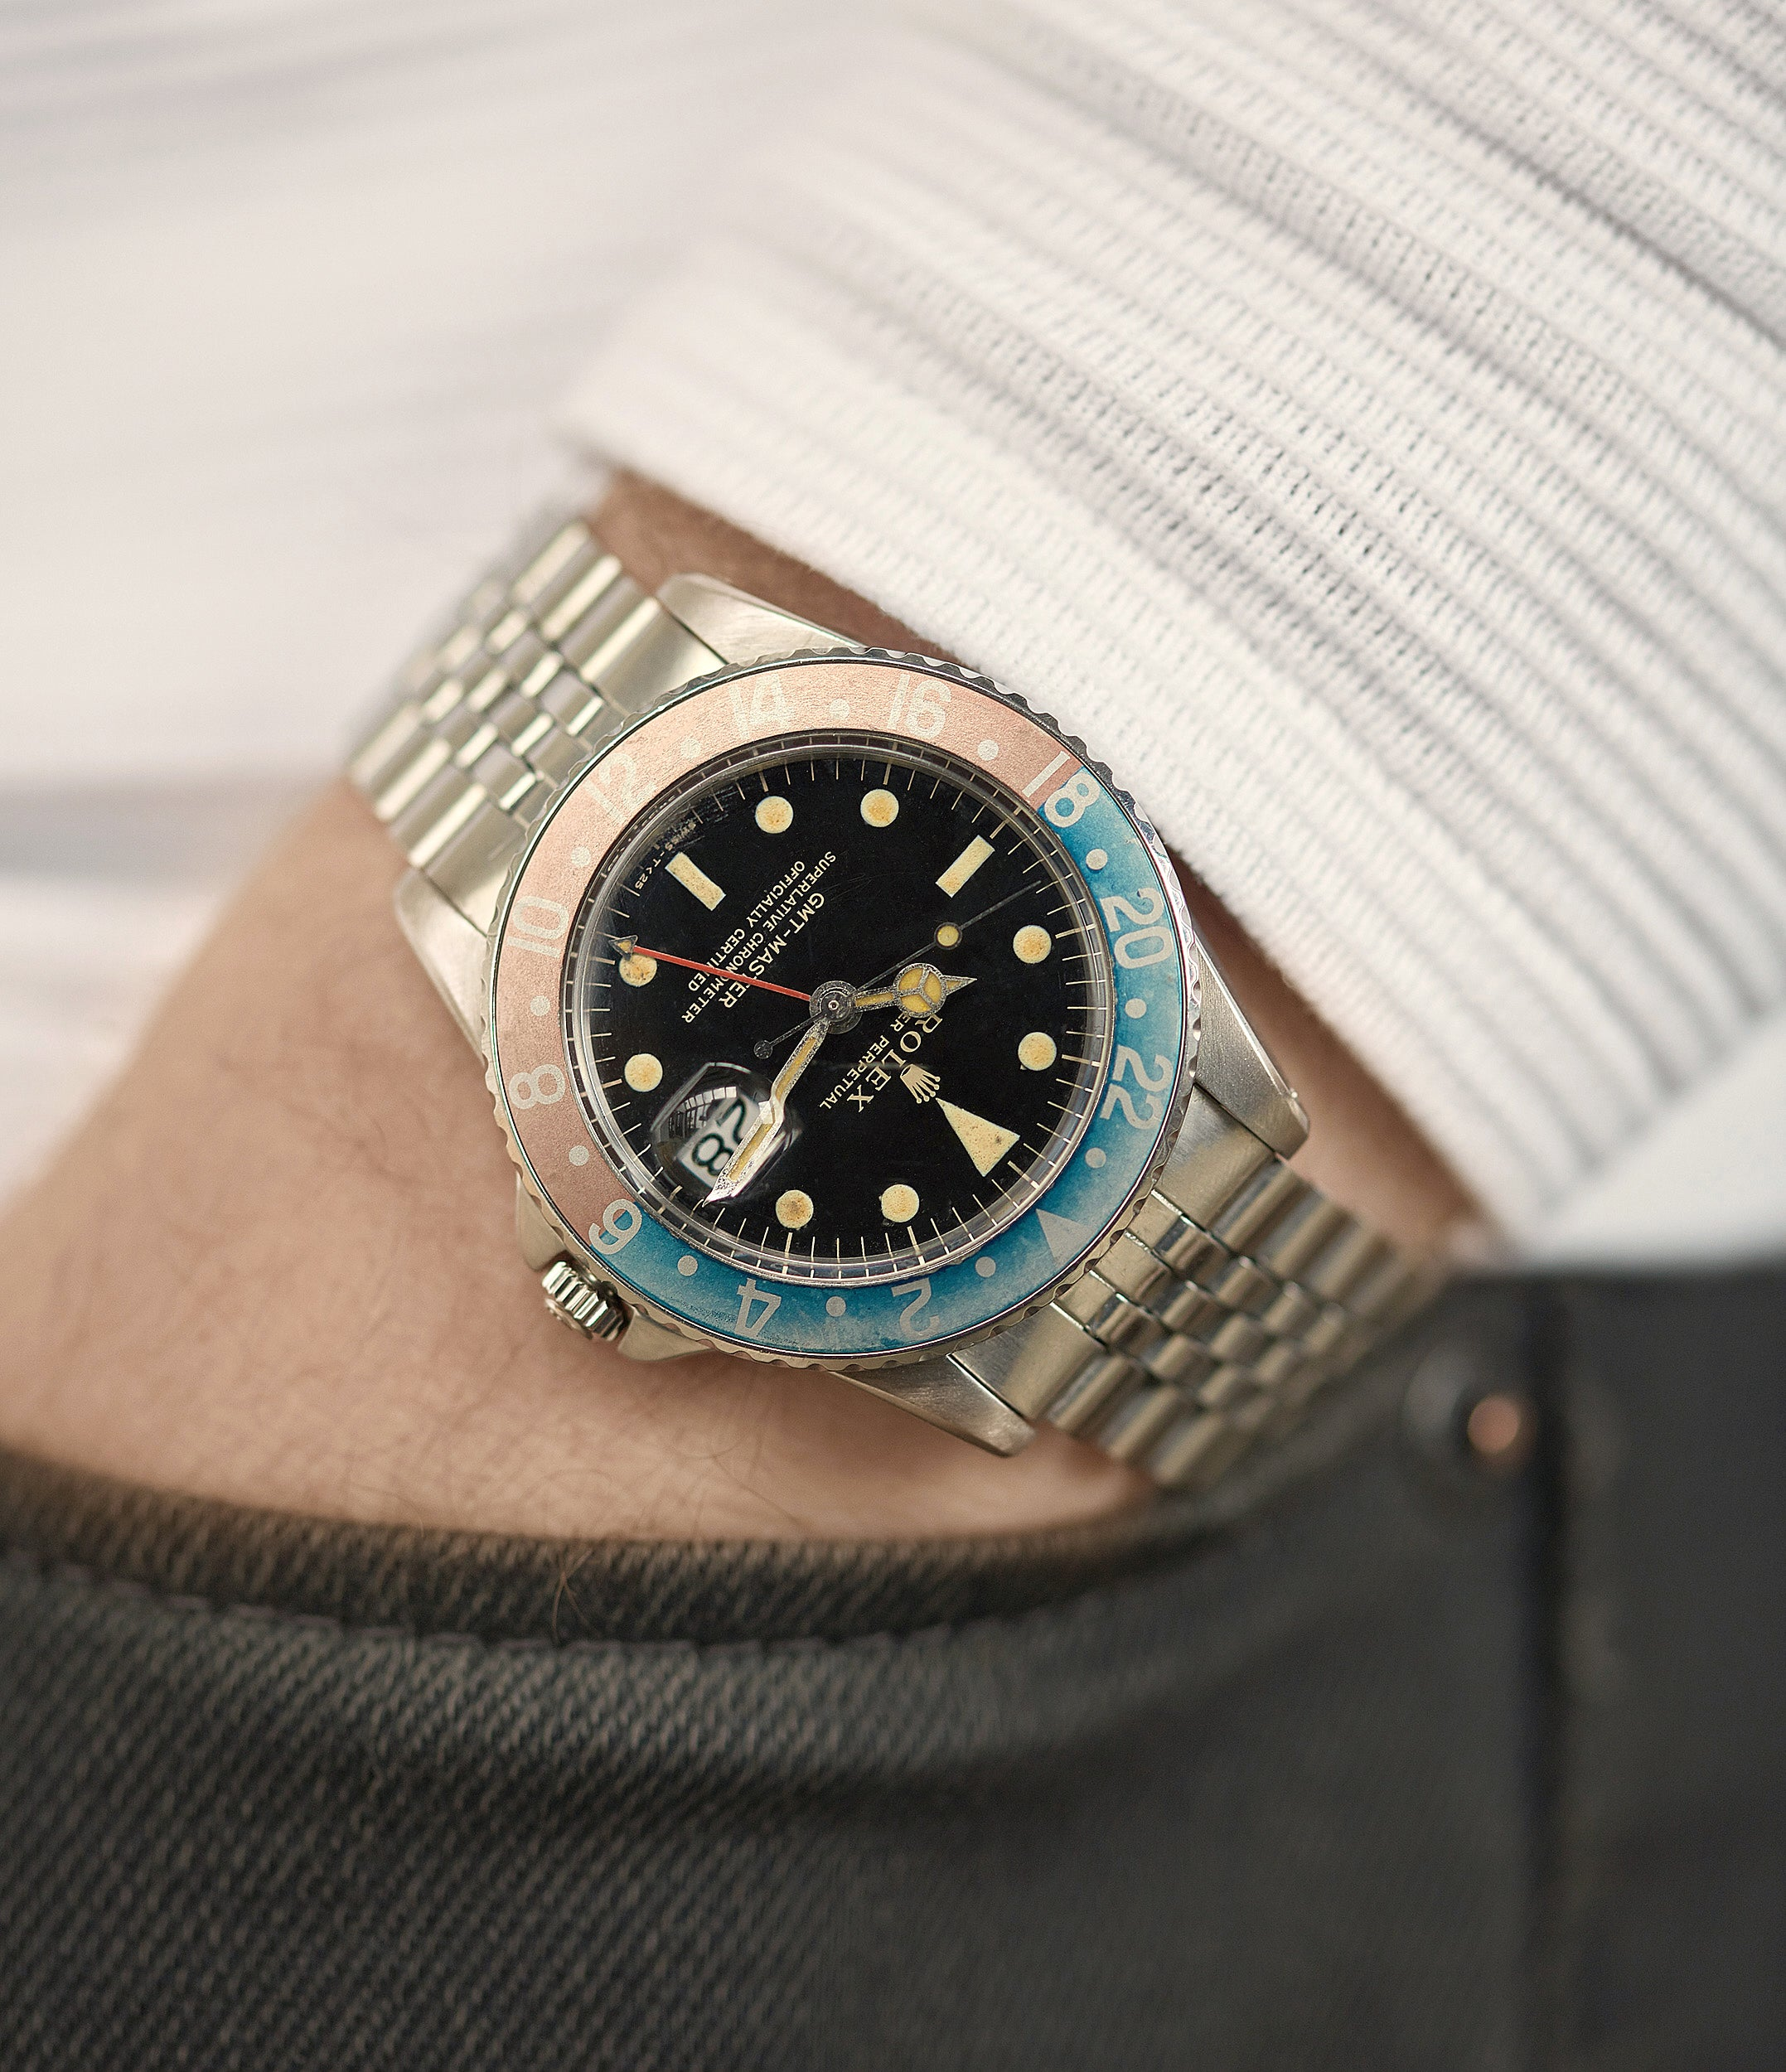 rare Rolex GMT-Master Pepsi bezel gilt dial vintage watch for sale online at A Collected Man London UK specialist of vintage watches